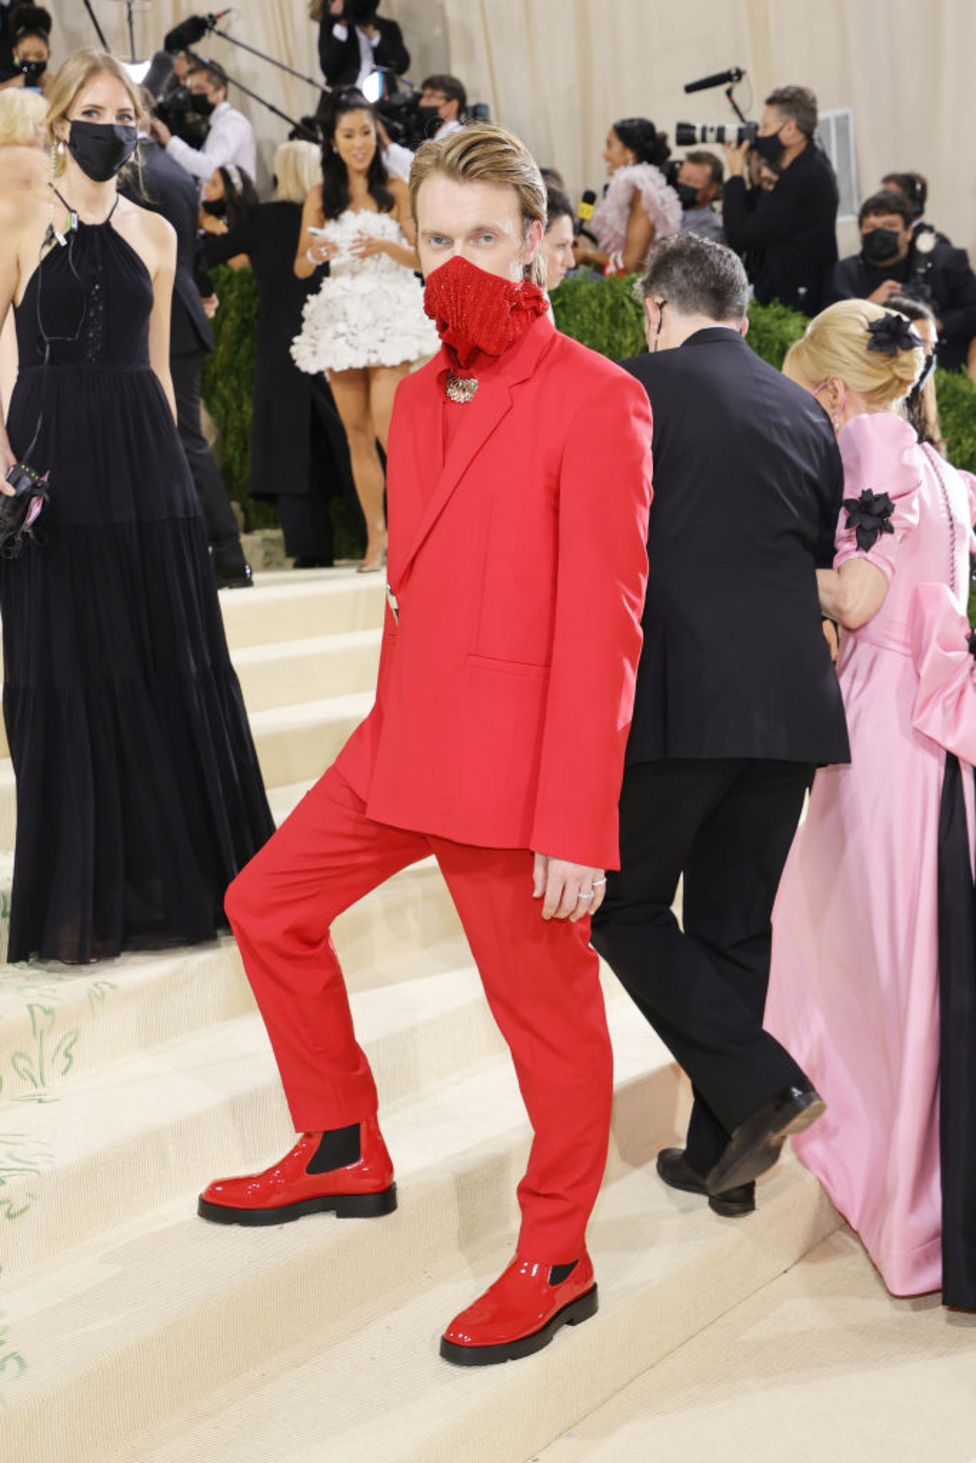 Eilish was accompanied by her brother, Finneas O'Connell, who chose an all-red suit and sequined face covering